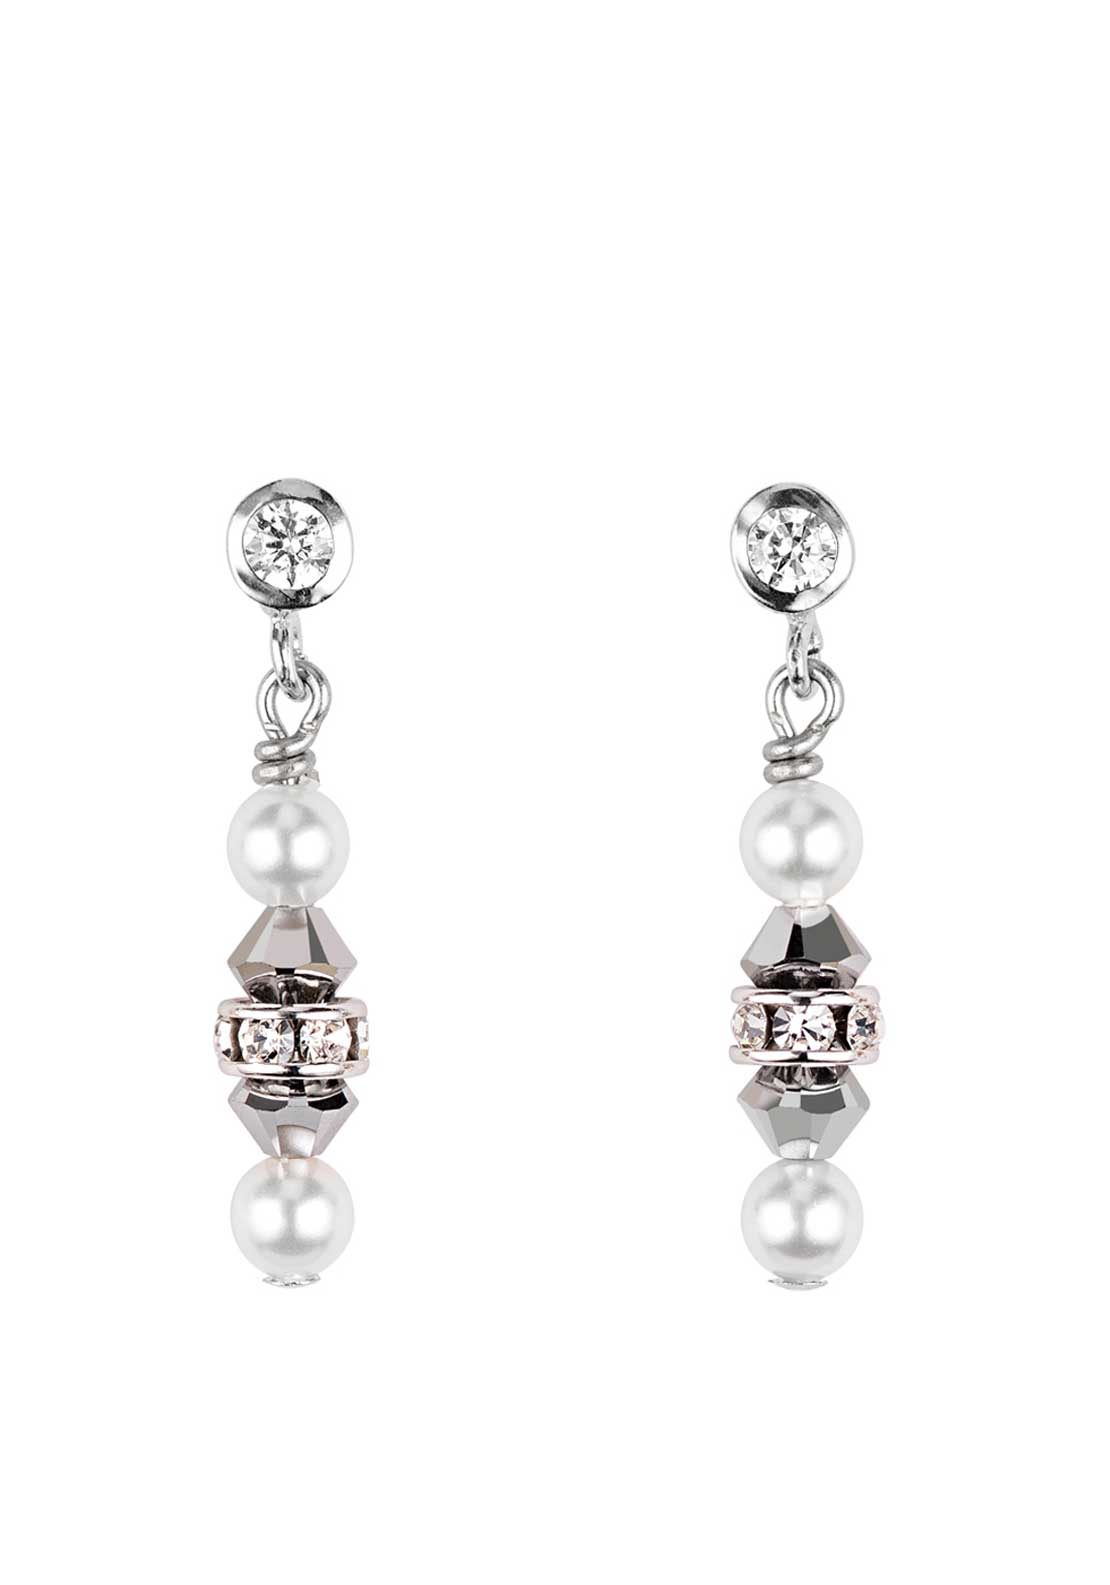 Coeur de Lion Swarovski Crystal Pearl Earrings, Silver